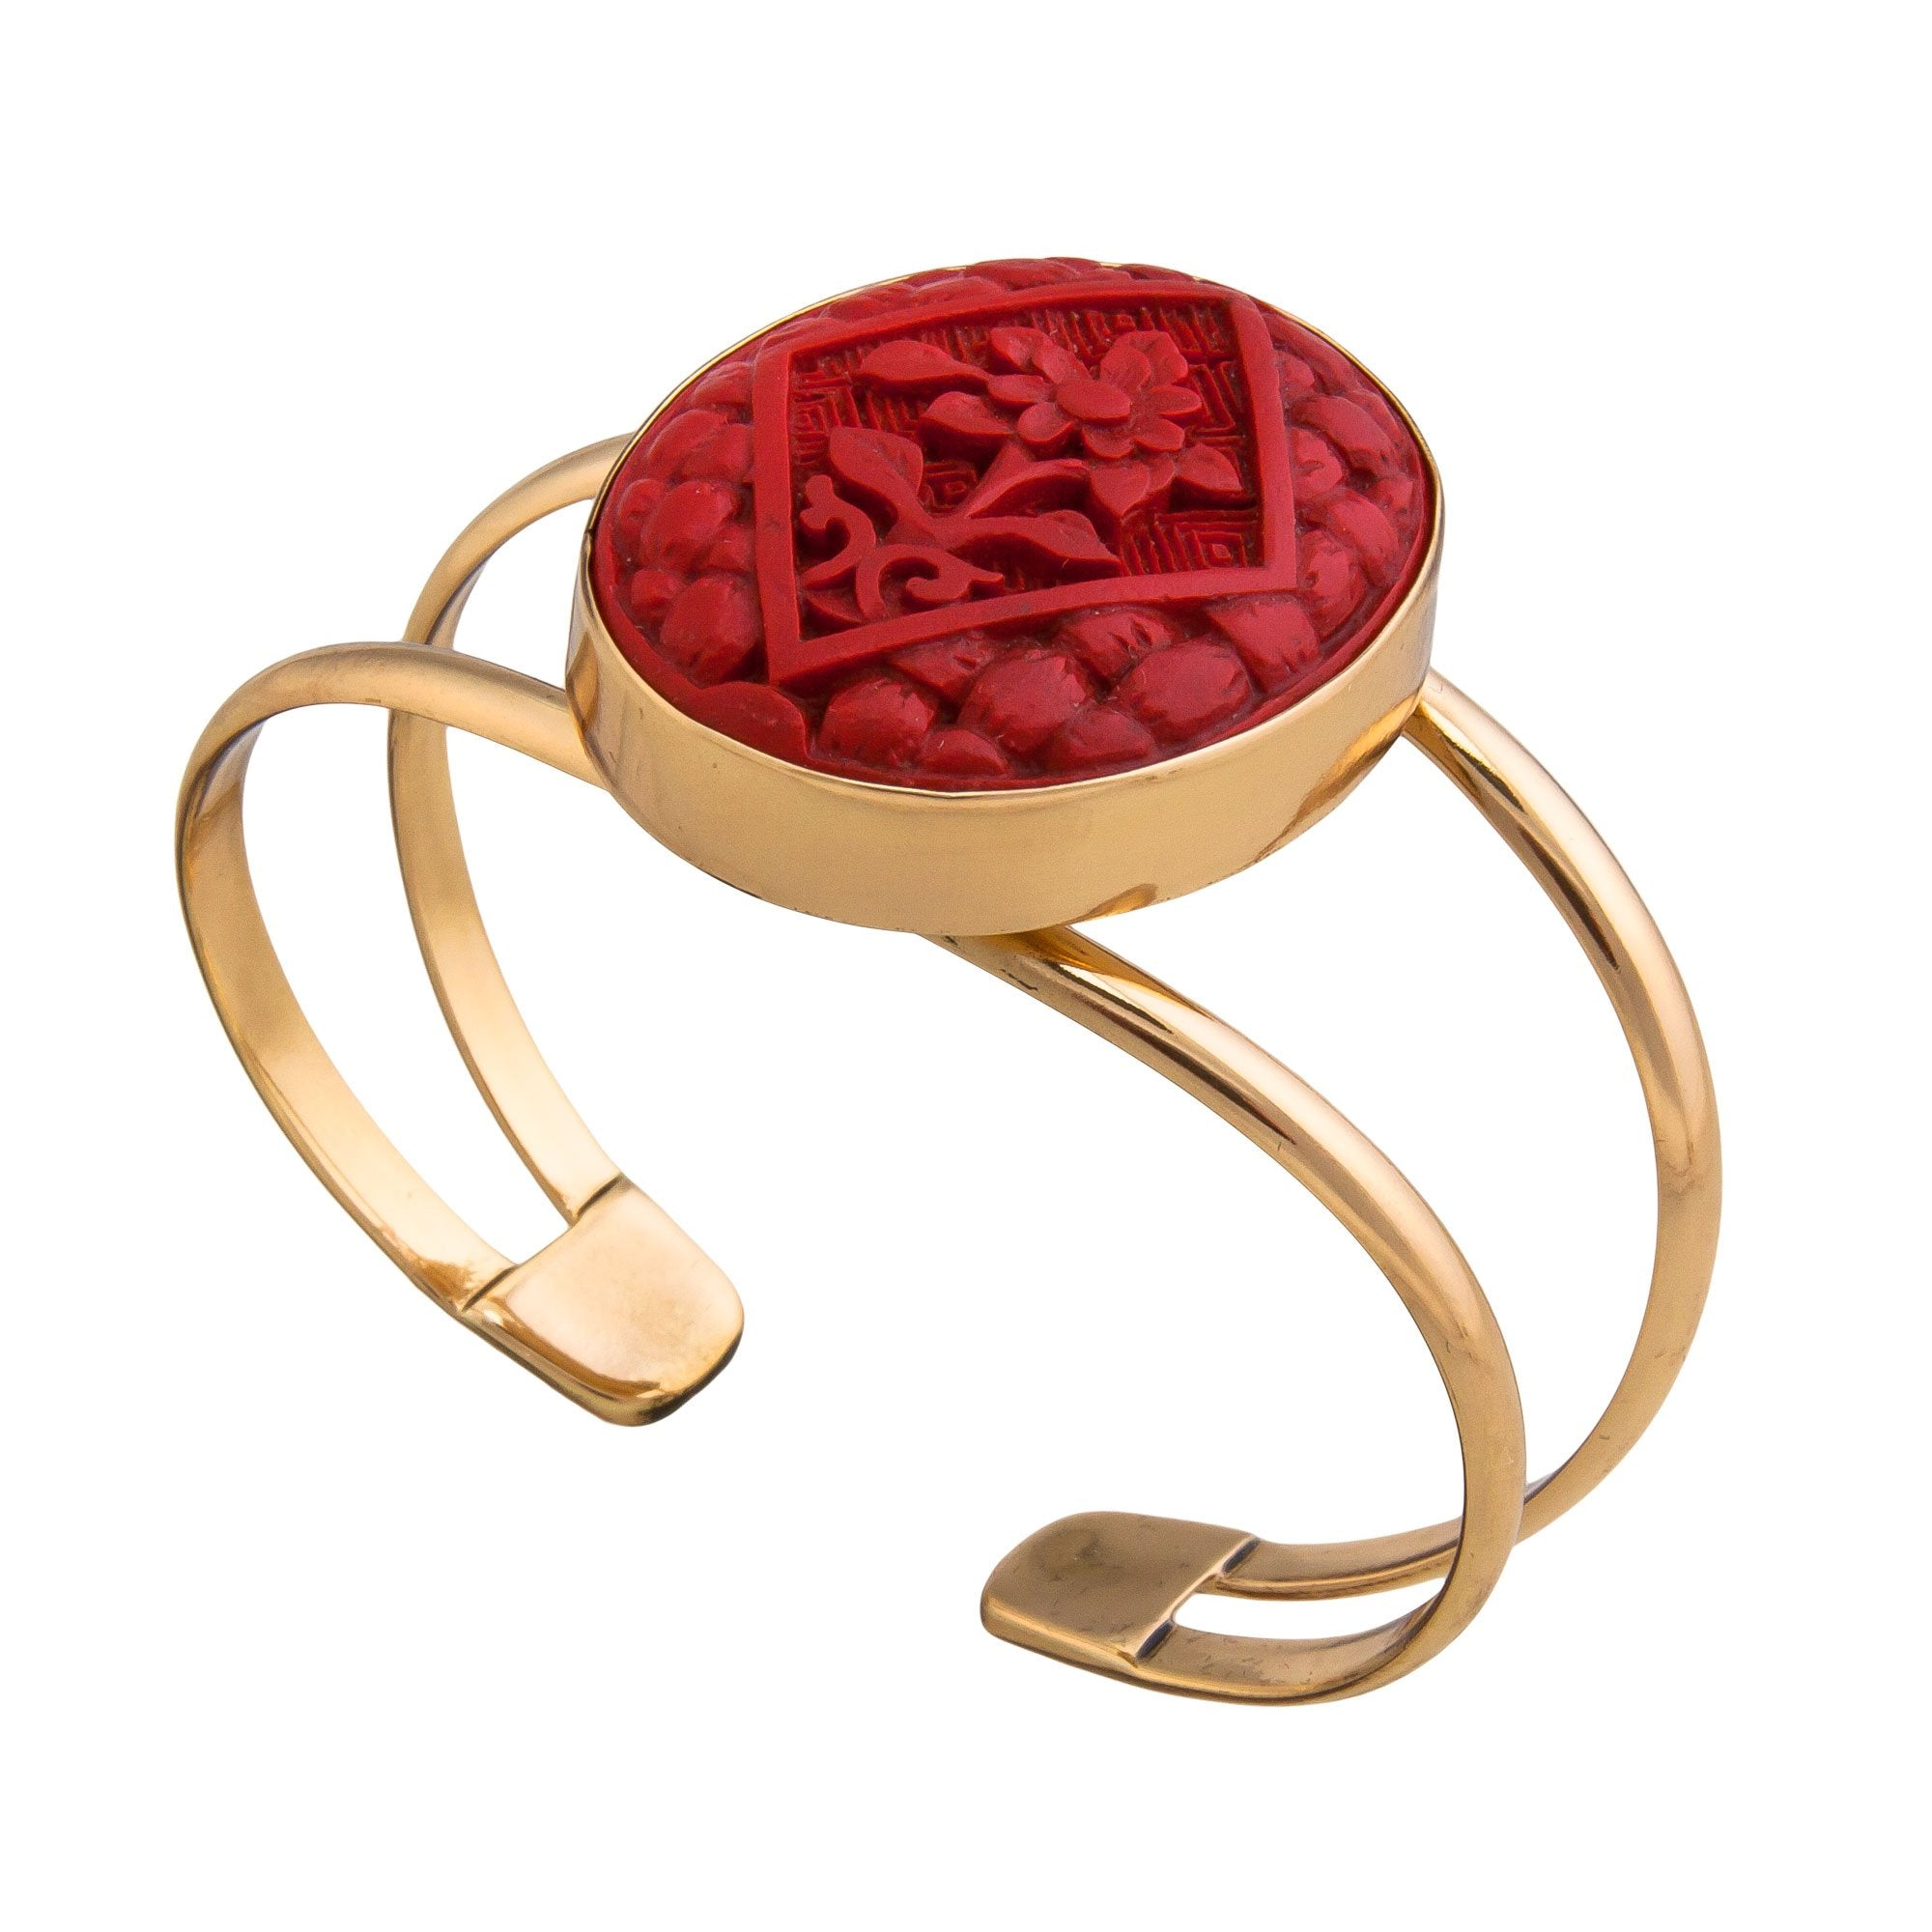 Alchemia Cinnabar Flower Double Band Cuff | Charles Albert Jewelry